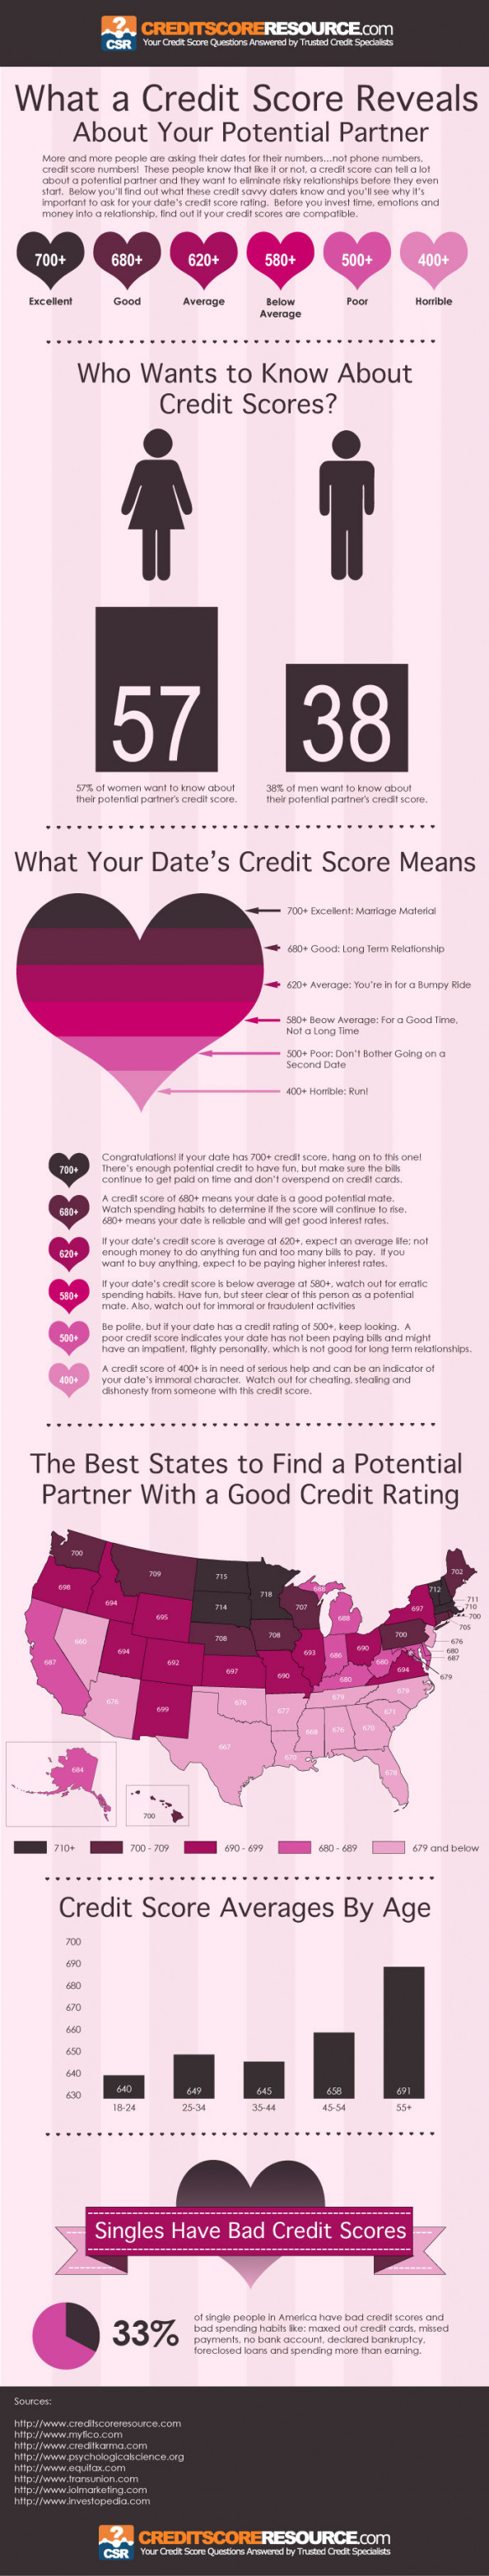 What a Credit Score Reveals About the Person You're Dating and Your Potential Partner Infographic